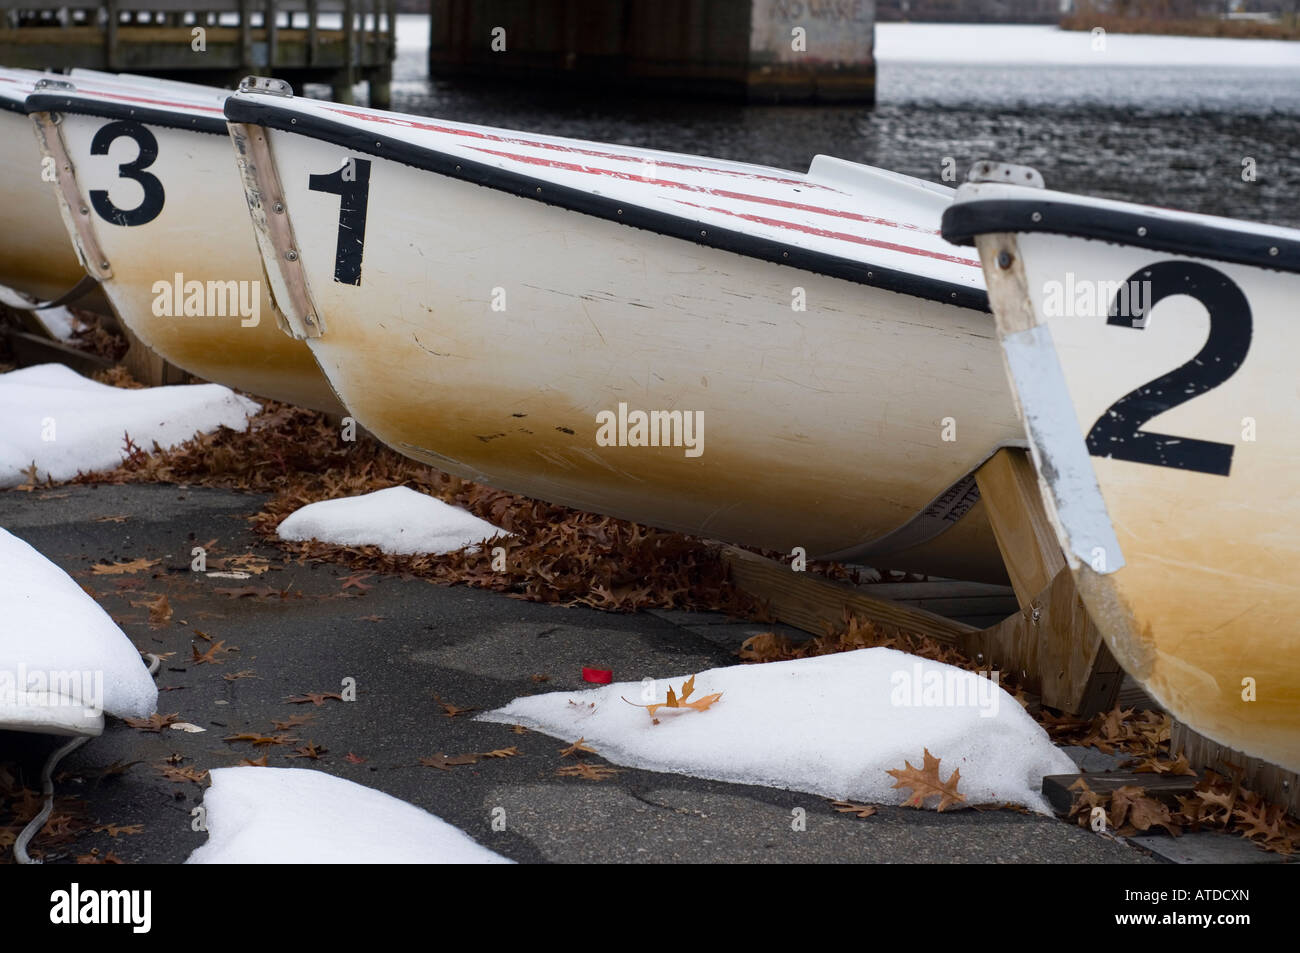 Numbered sailboats pulled aground in the winter. - Stock Image